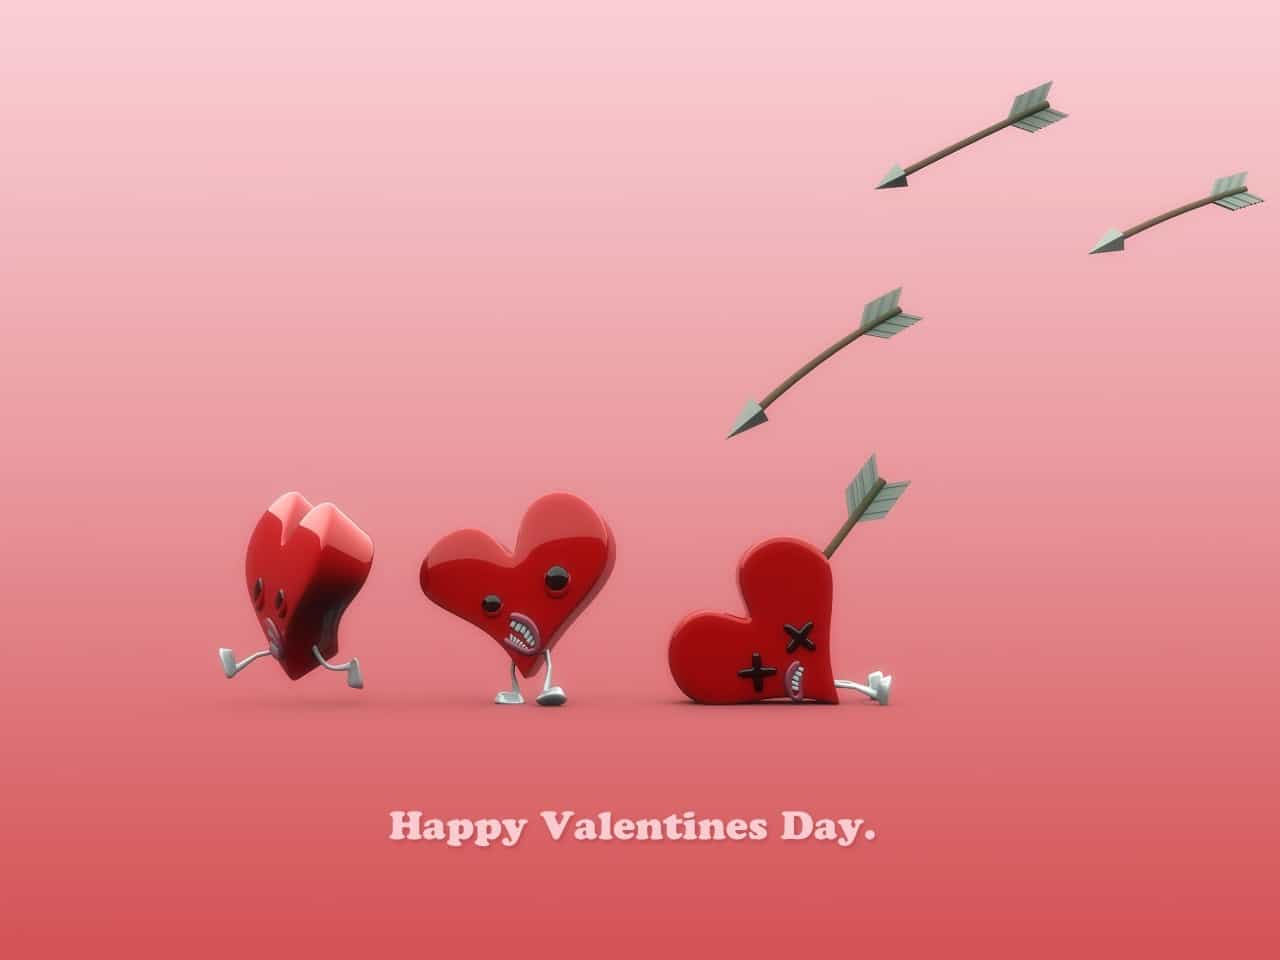 Sarcasm Part 1: On Discerning Love, Valentine's Day, and the Danger of Sarcasm